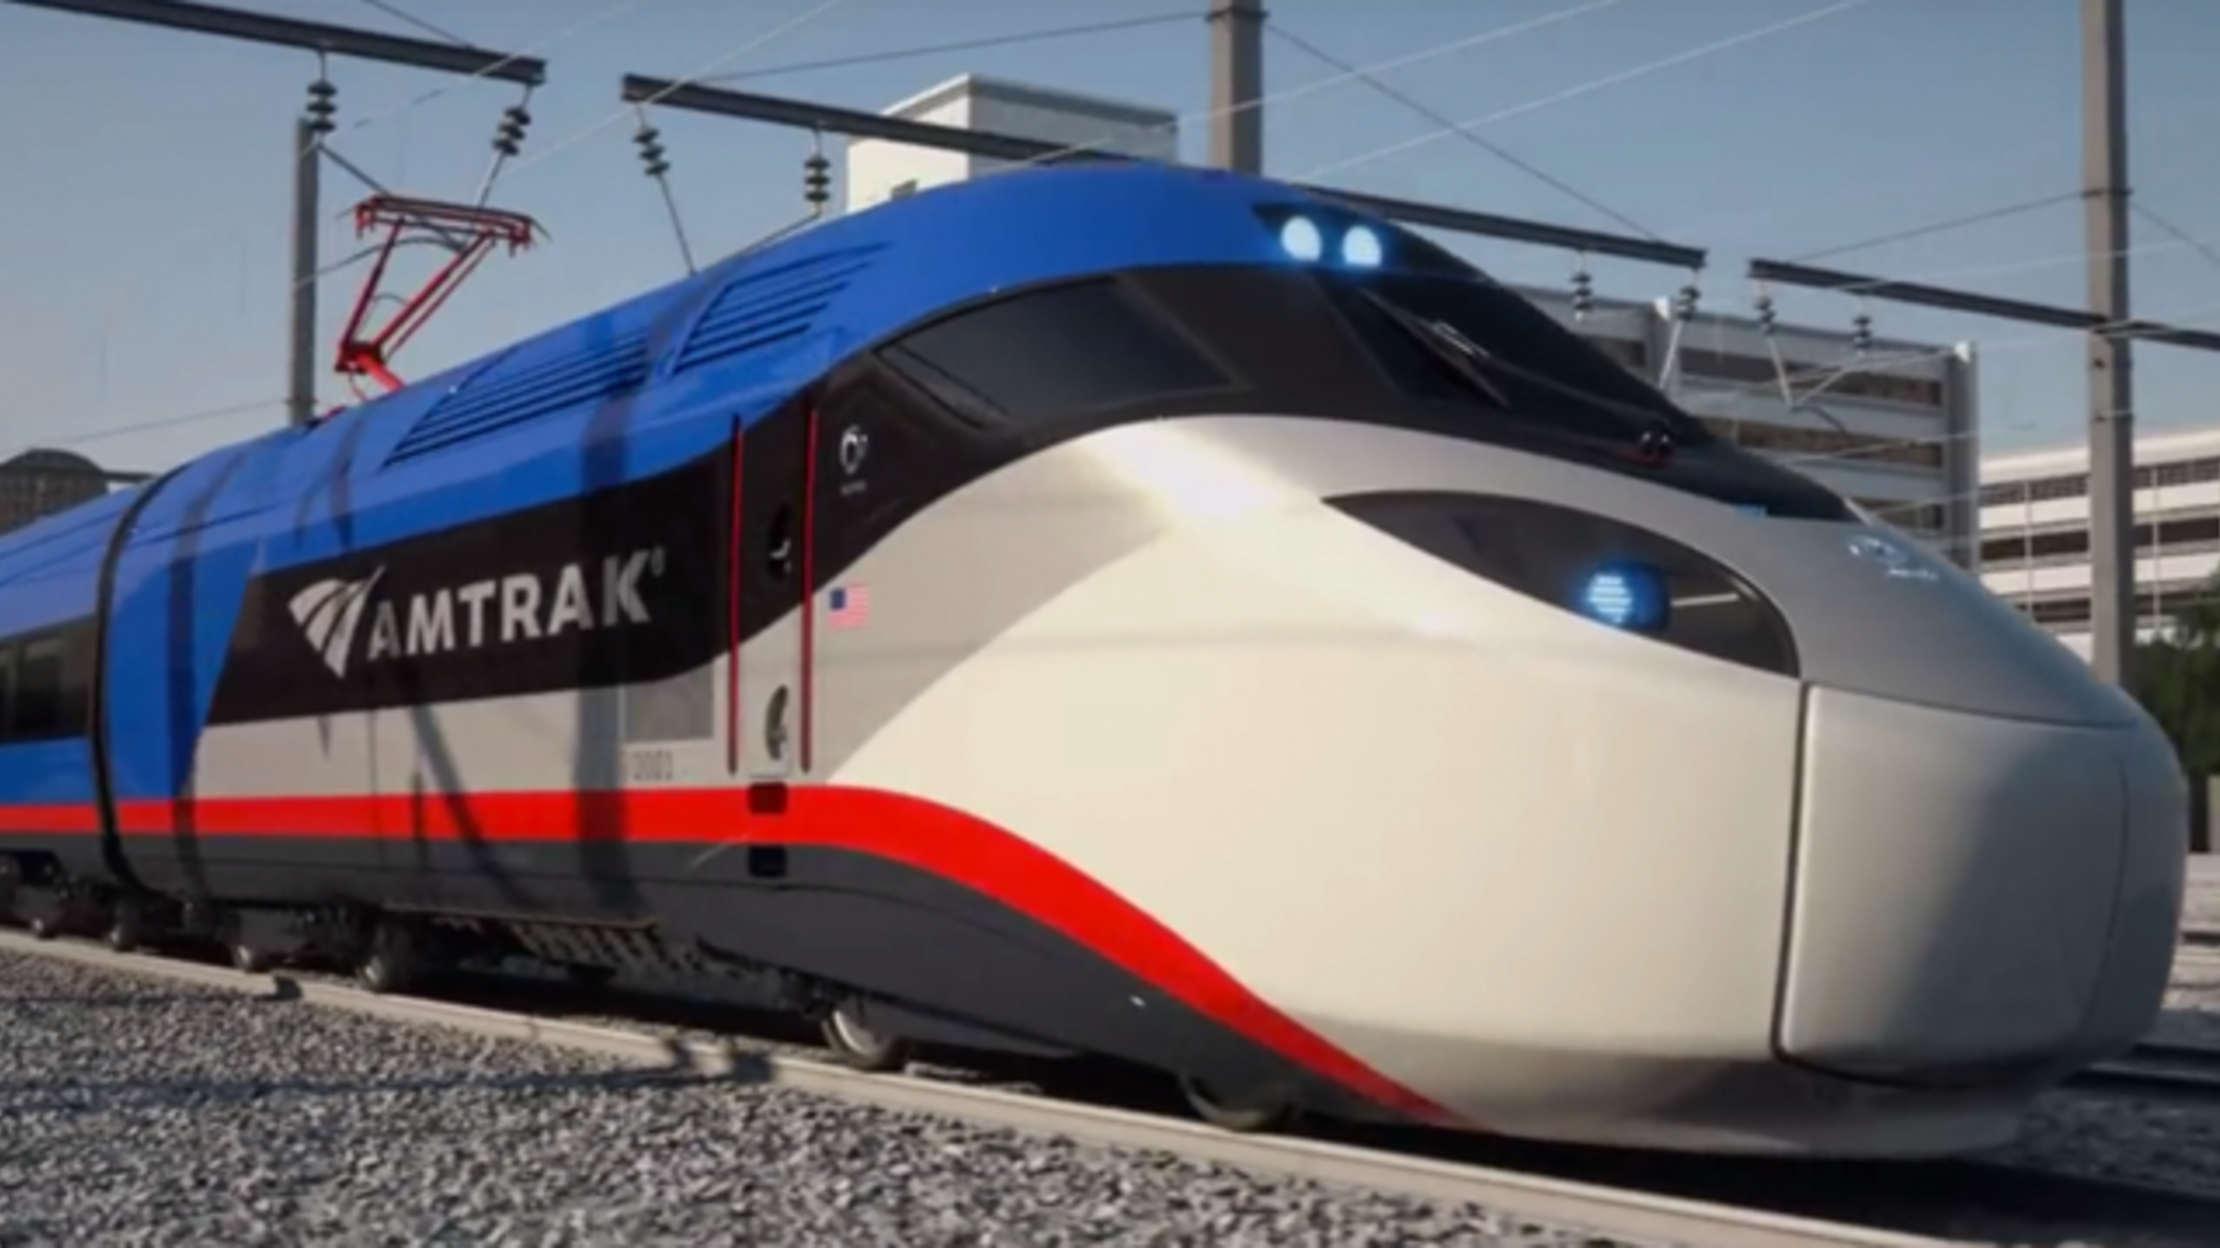 Amtrak Will Introduce New High-Speed Trains in 2021